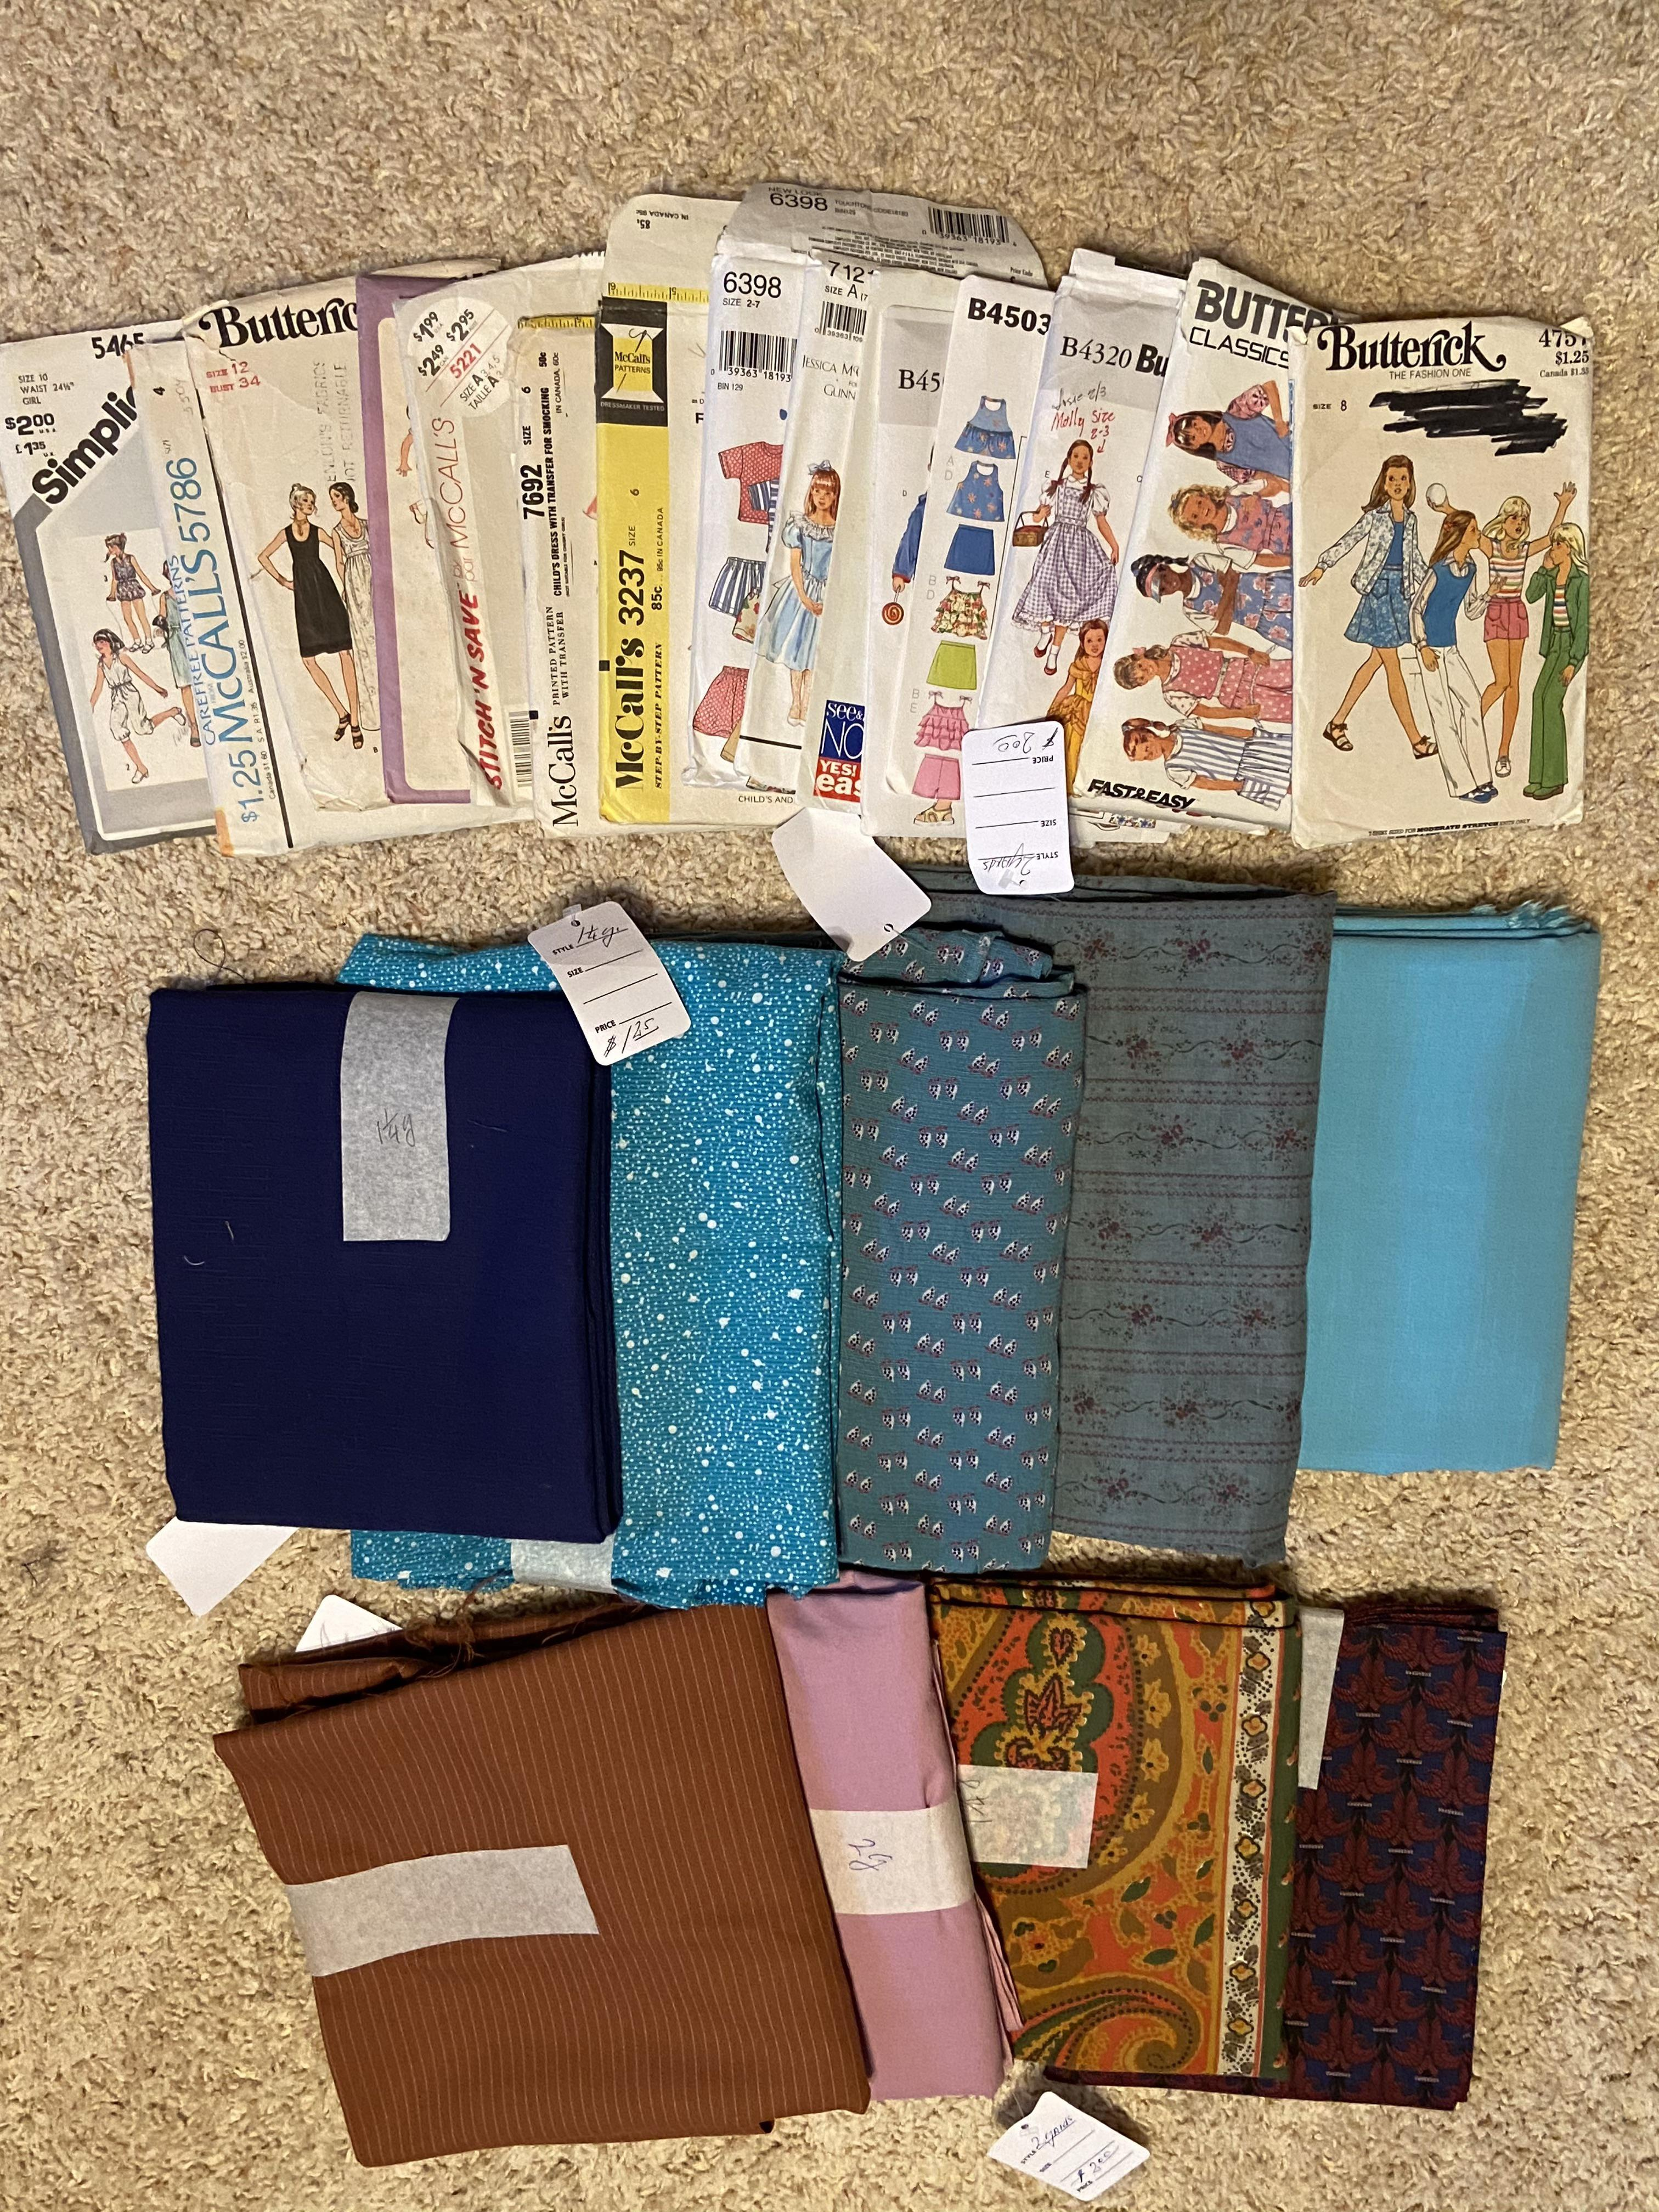 4 Yards Of Fabric : yards, fabric, Today's, Thrift:, Patterns,, Yards, Fabric,, Sewing